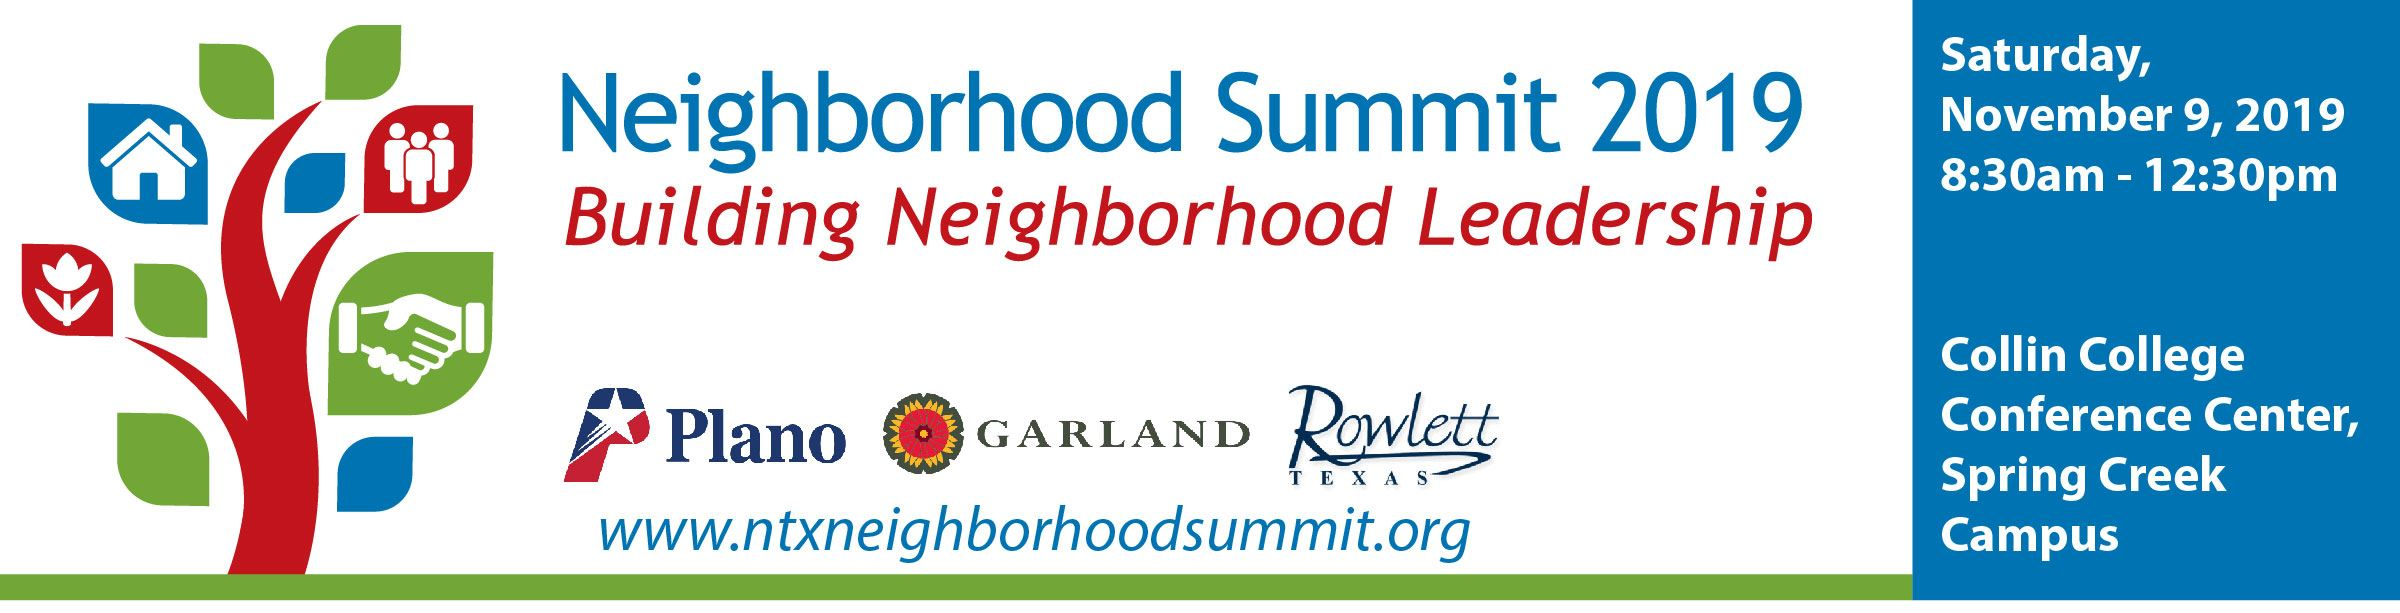 Neighborhood Summit 2019: Building Neighborhood Leadership | Saturday, Nov. 9, 8:30 a.m. to 12:30 p.